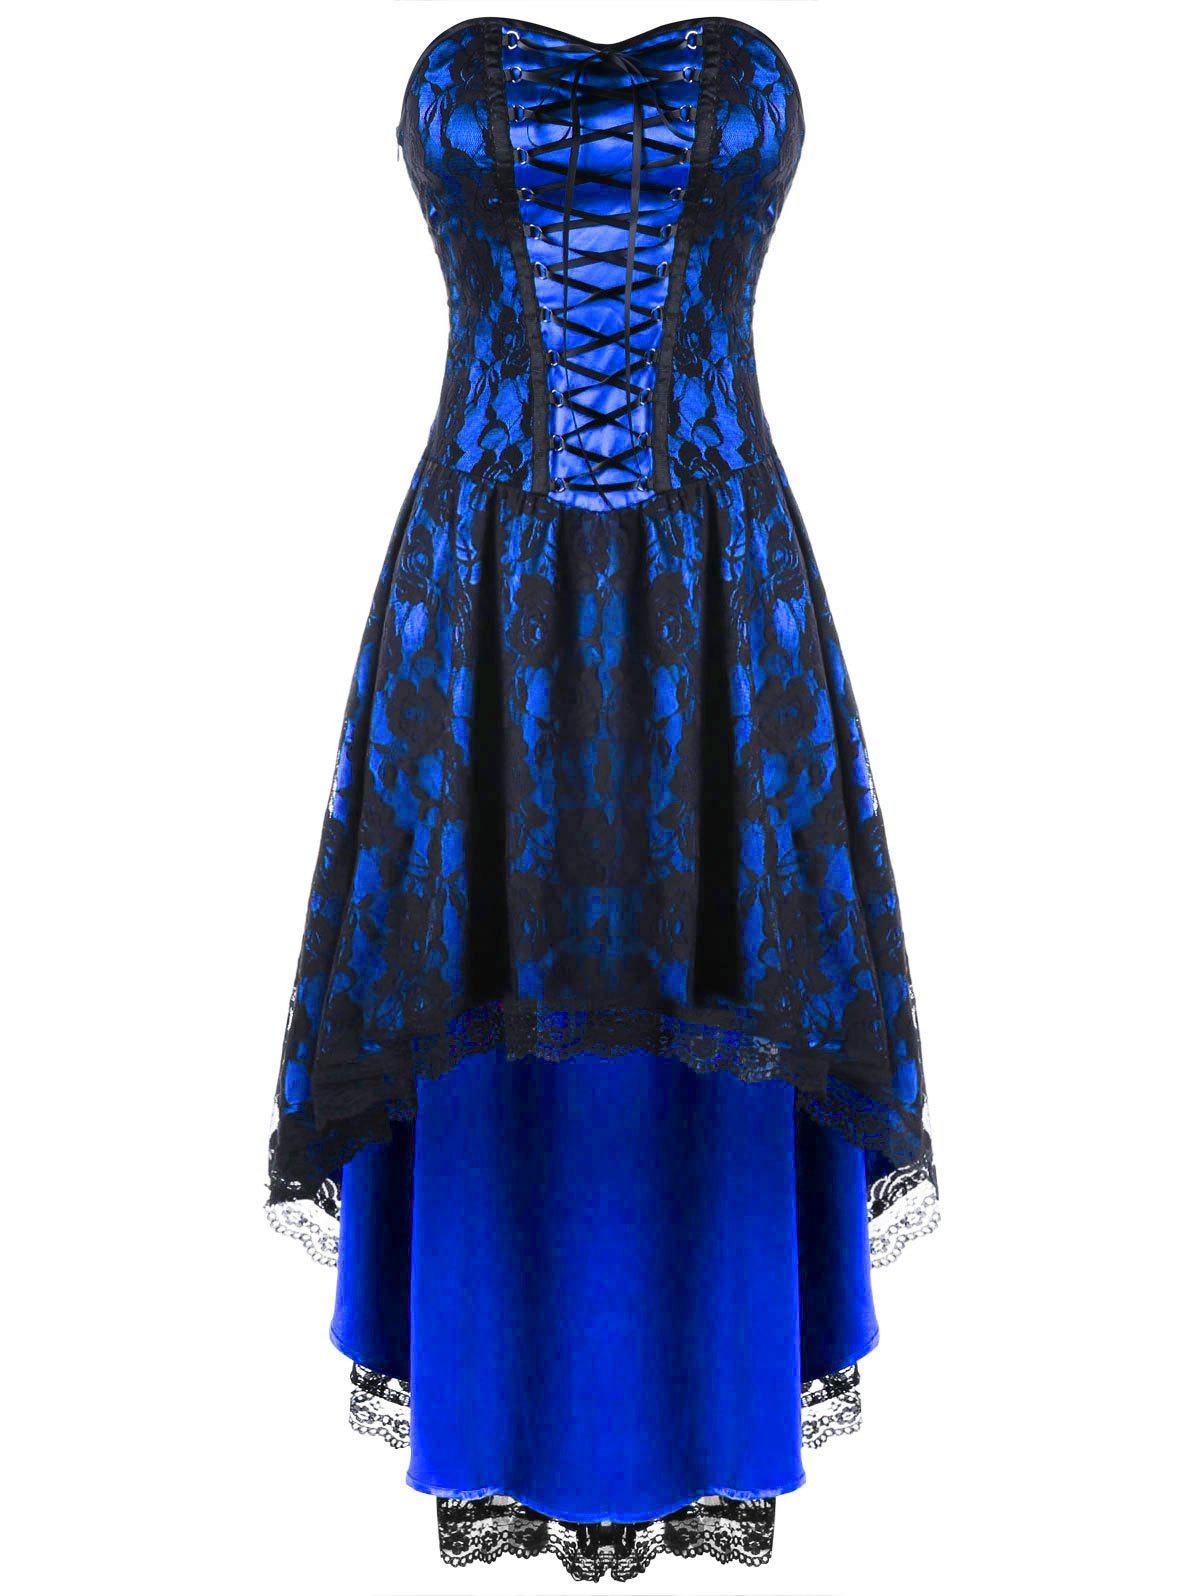 Lace Up Strapless Dip Hem Corset DressWOMEN<br><br>Size: L; Color: BLUE; Style: Vintage; Material: Nylon,Spandex; Silhouette: A-Line; Dresses Length: Knee-Length; Neckline: Strapless; Sleeve Length: Sleeveless; Embellishment: Lace; Pattern Type: Floral; With Belt: No; Season: Fall,Spring; Weight: 0.4000kg; Package Contents: 1 x Dress;